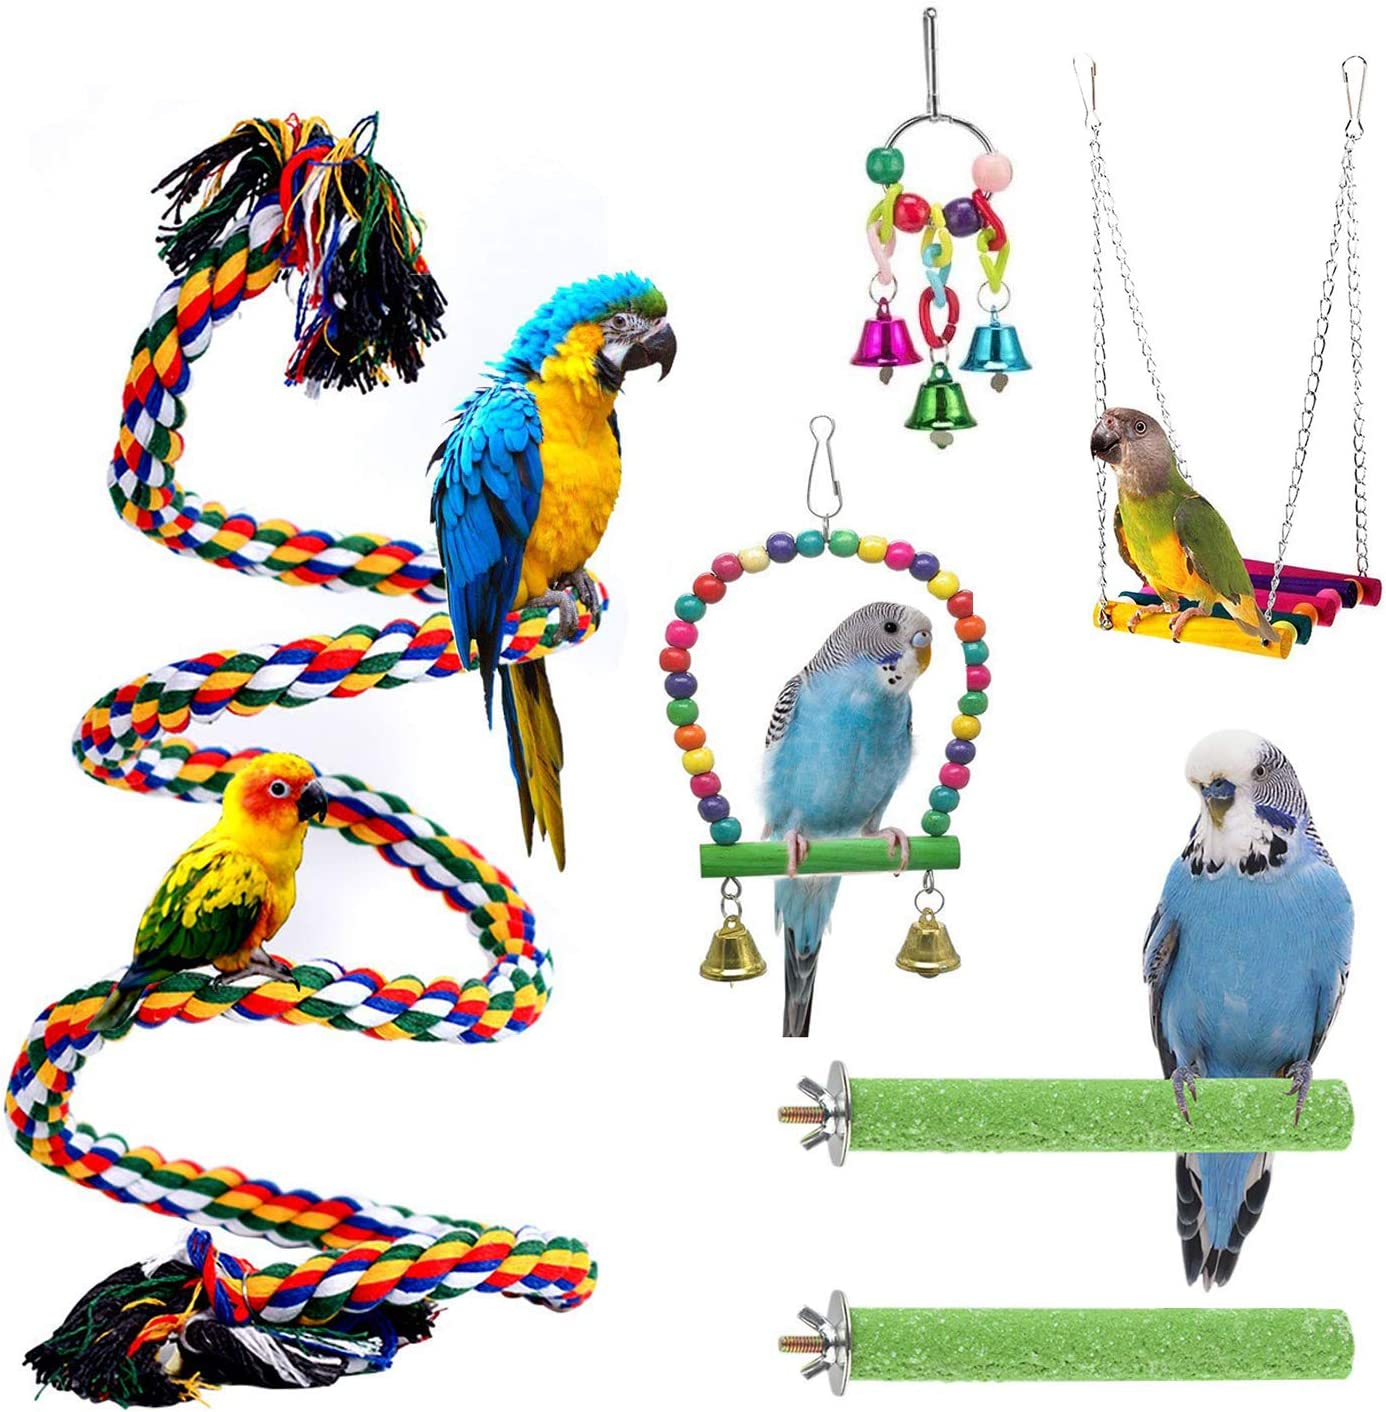 WUZJ 6PCS Bird Toys and Very popular Perches Ha Selling rankings Rope Perch Cage Set